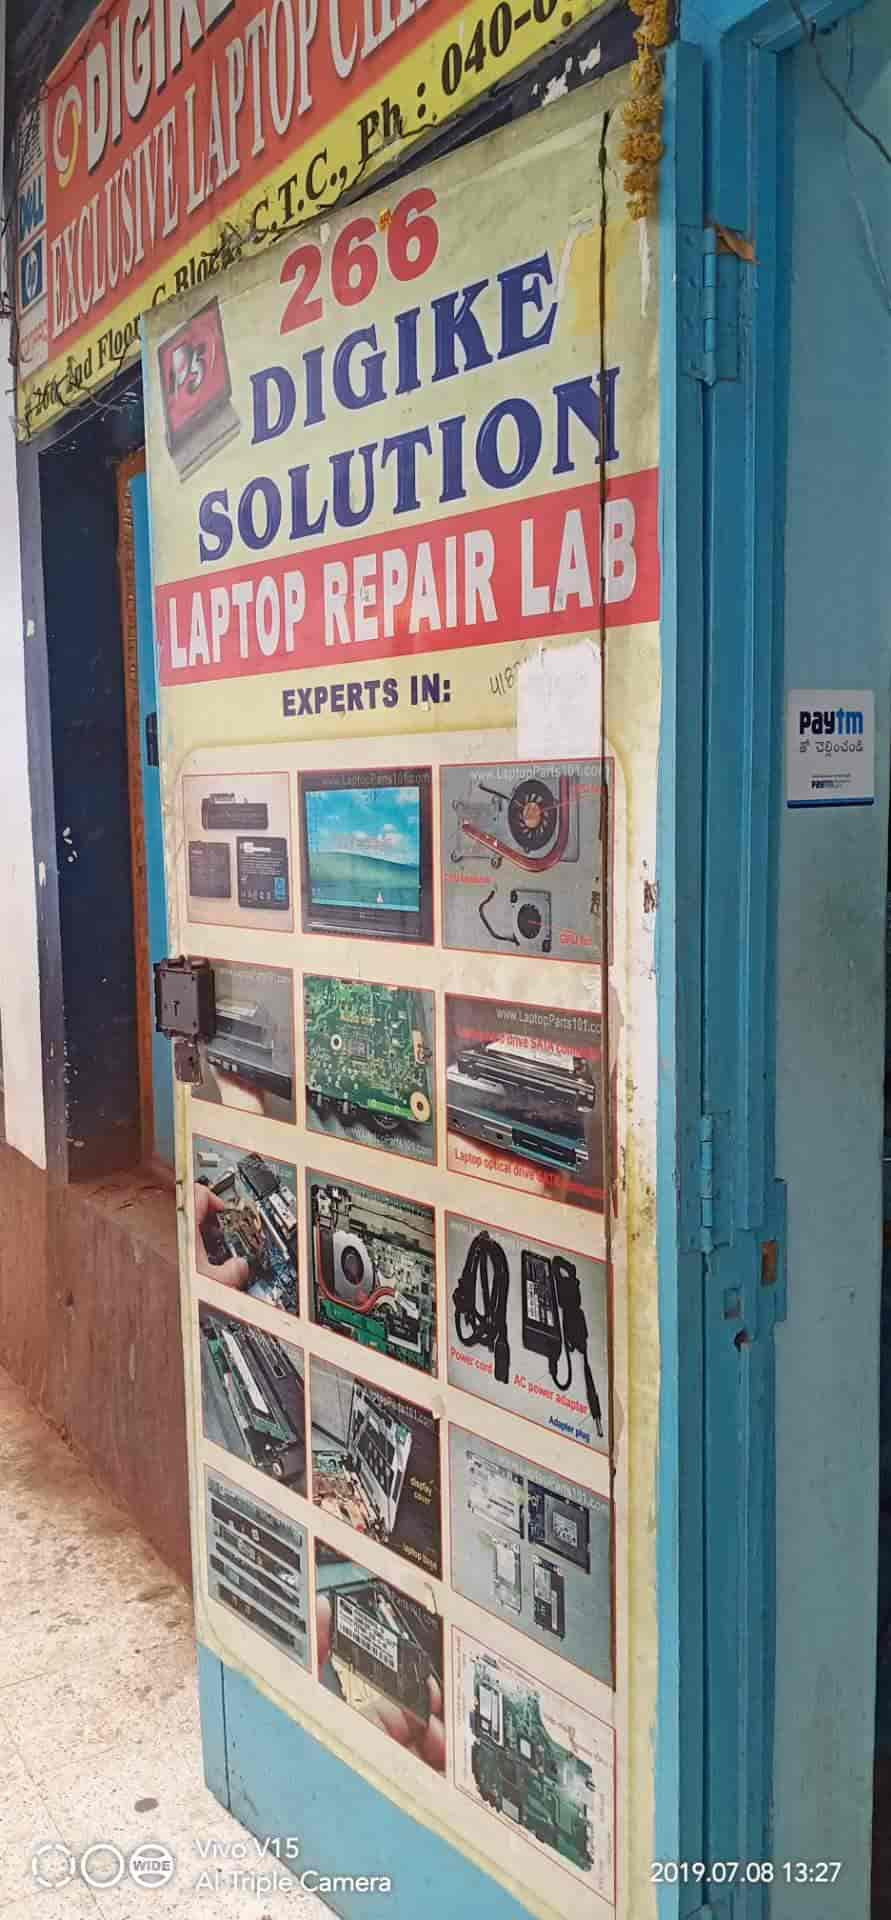 Digikey Solutions, Secunderabad - Laptop Repair & Services